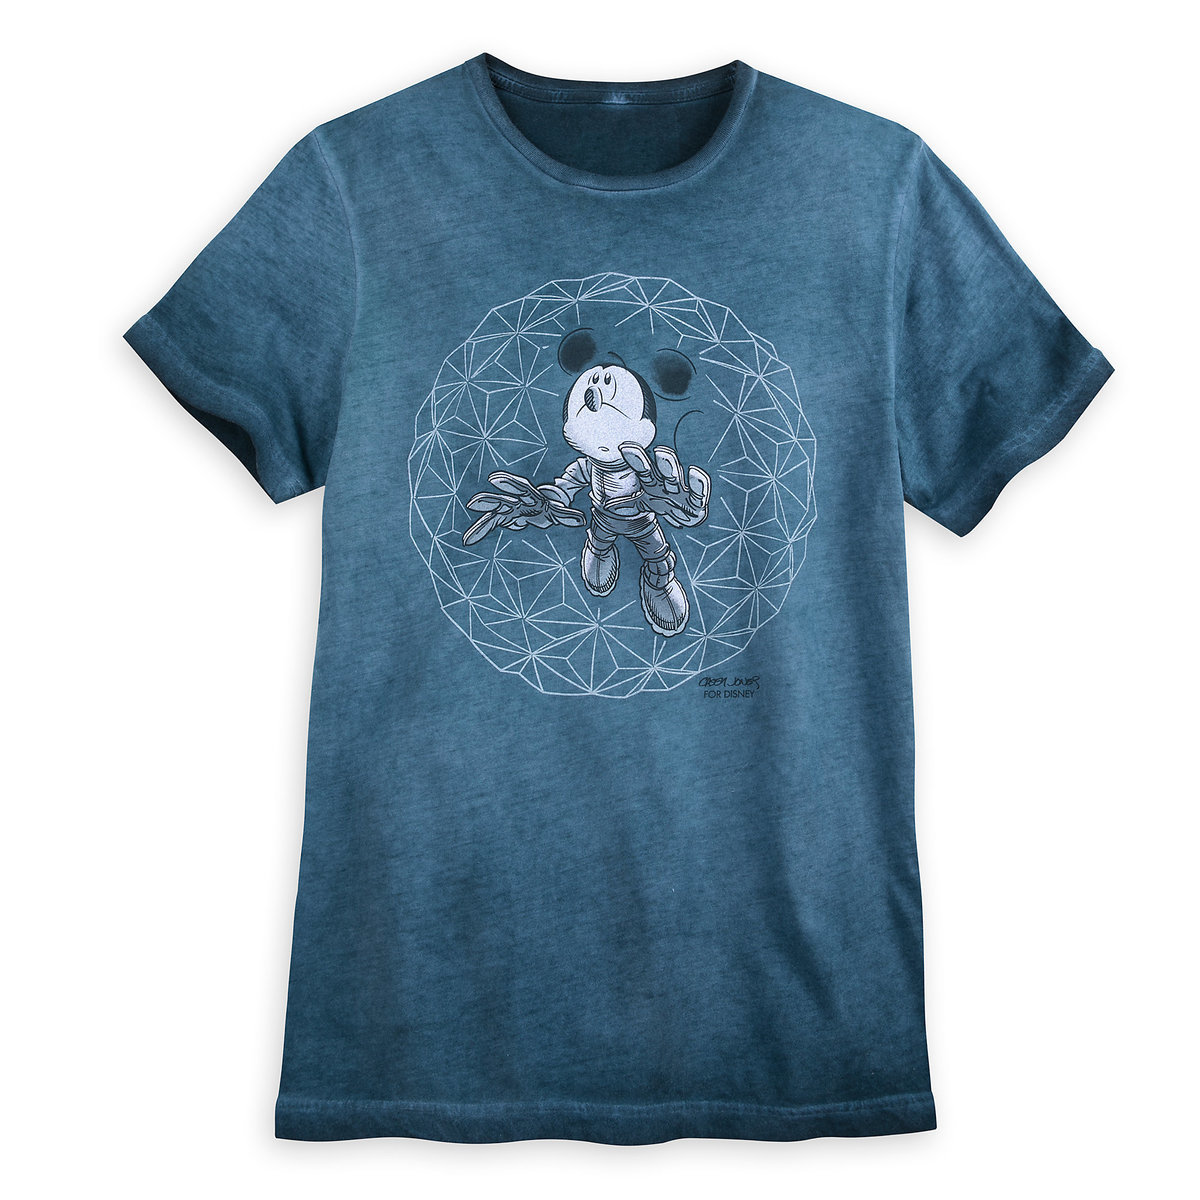 62c71d55 Product Image of Mickey Mouse Disney Parks Artist Series T-Shirt for Men by  Casey